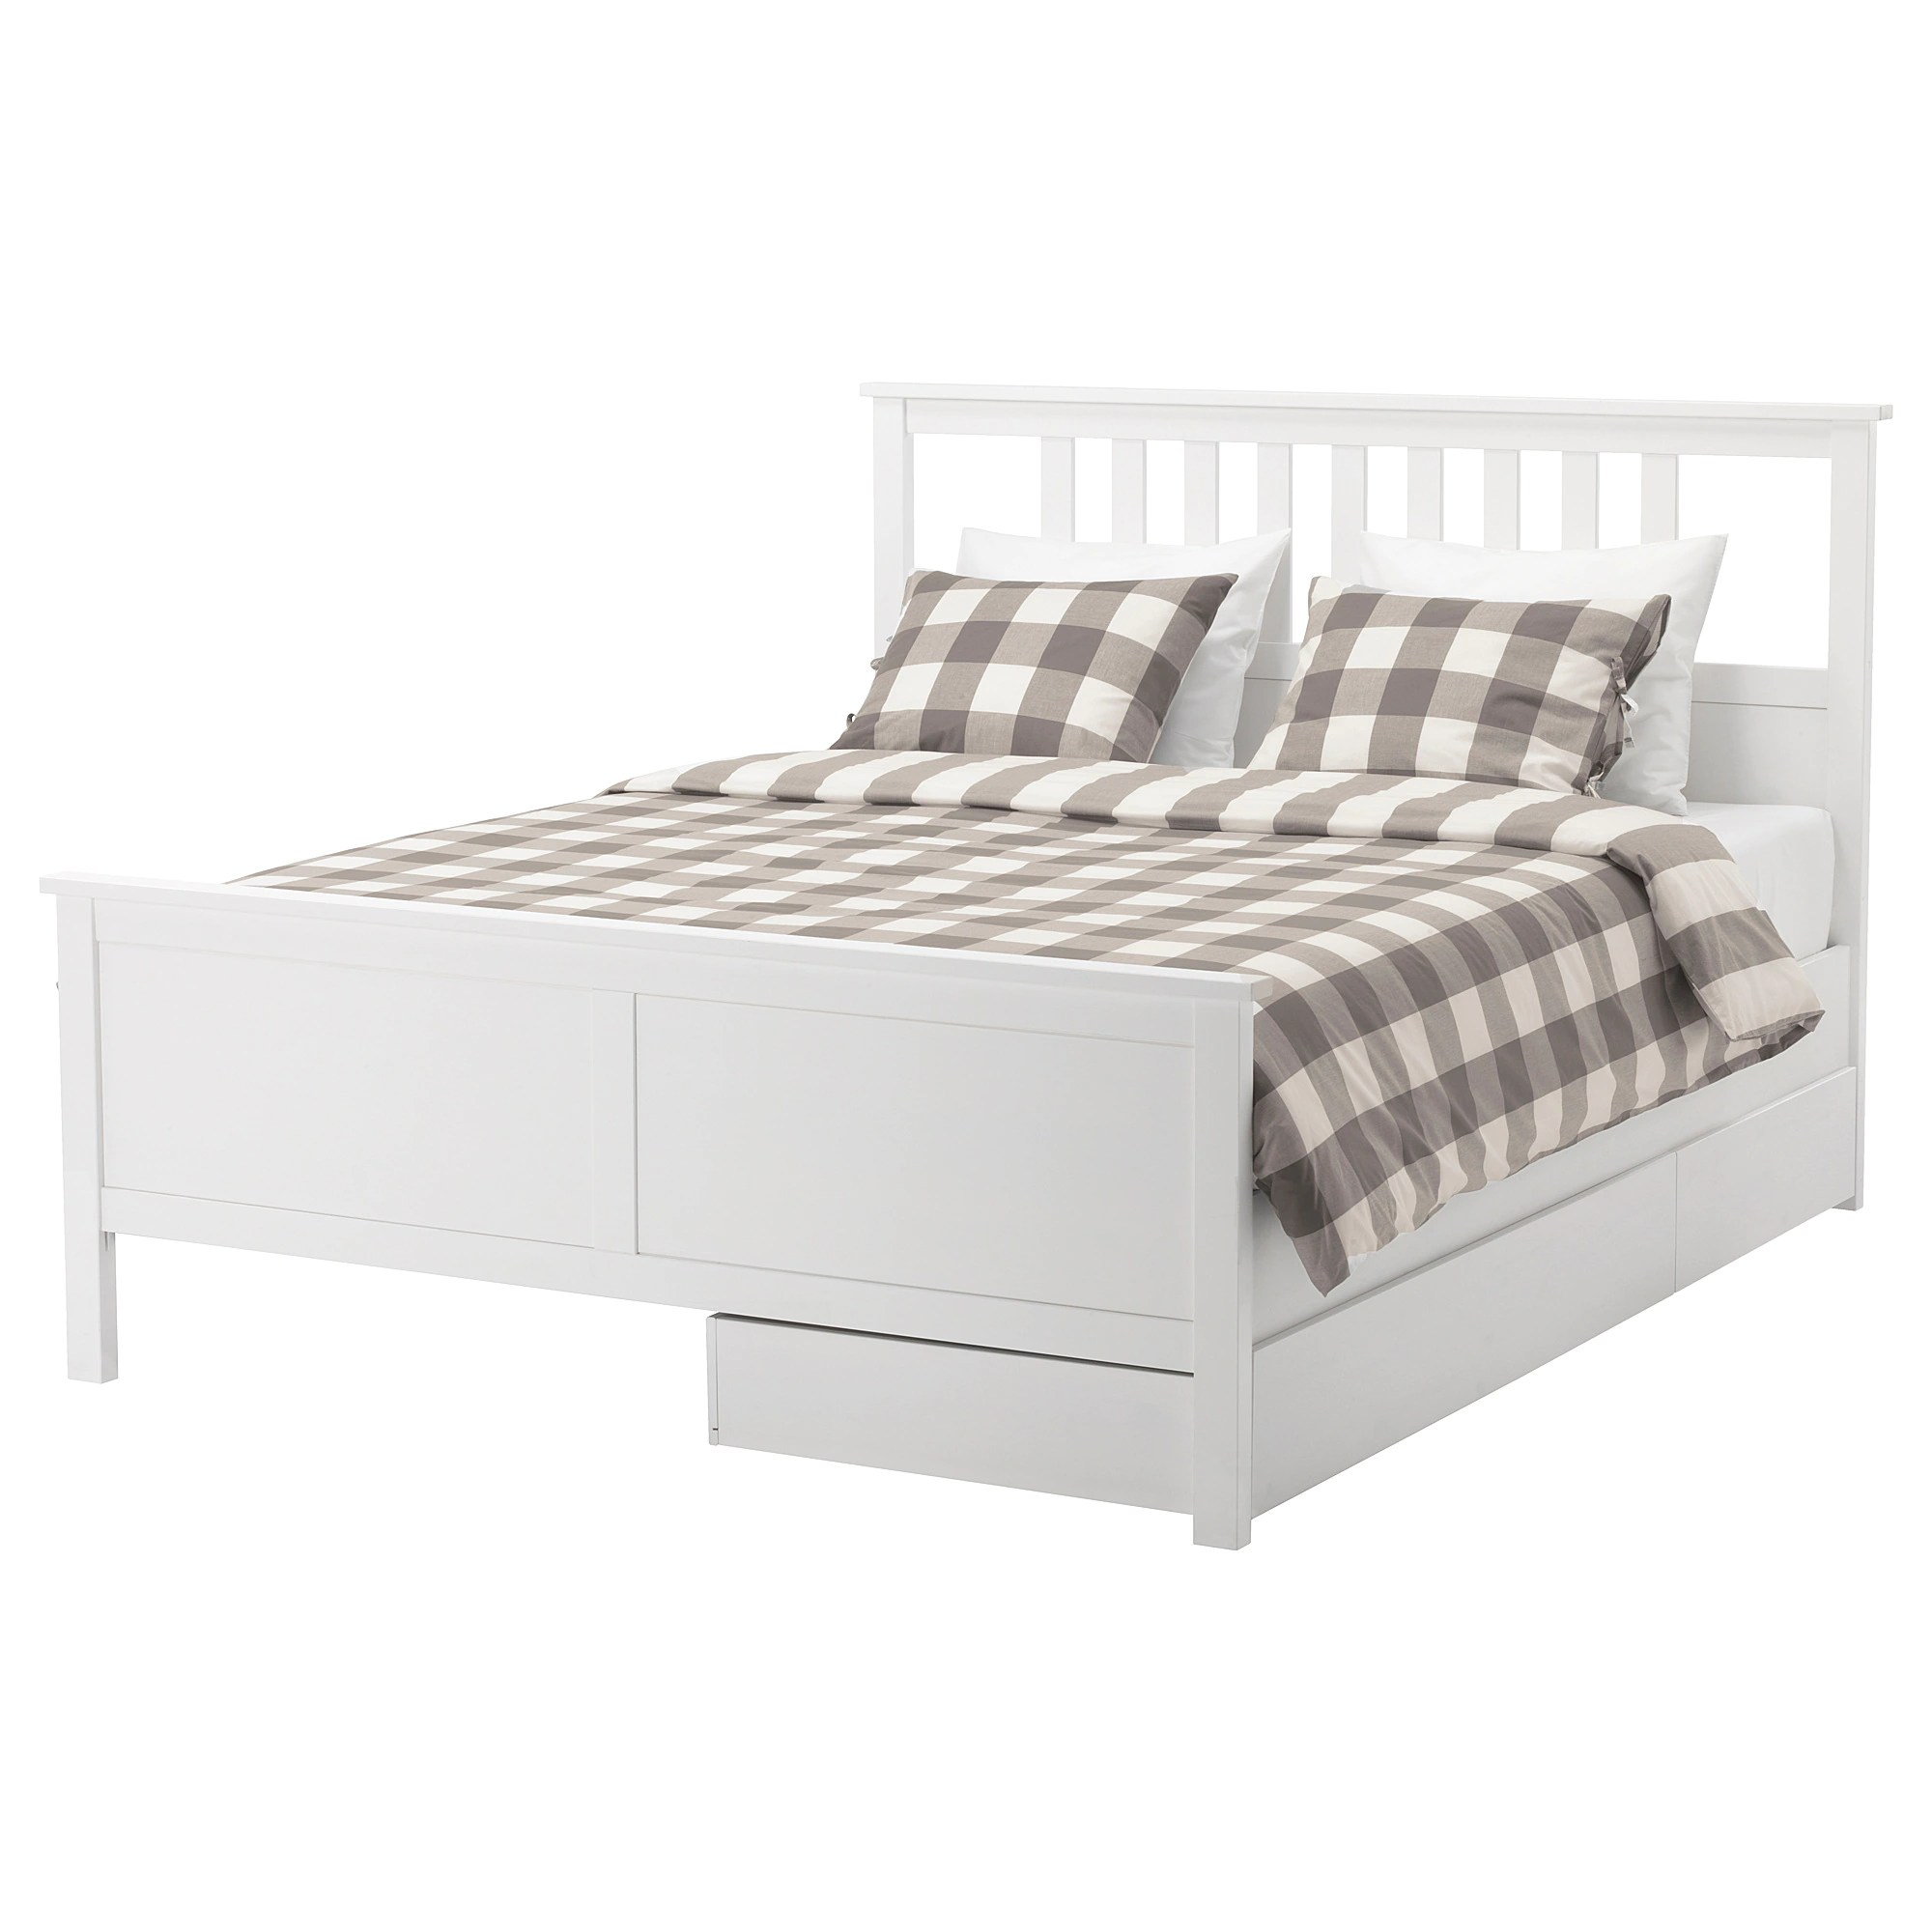 Bed Frame With 2 Storage Boxes Hemnes White Stain Lönset